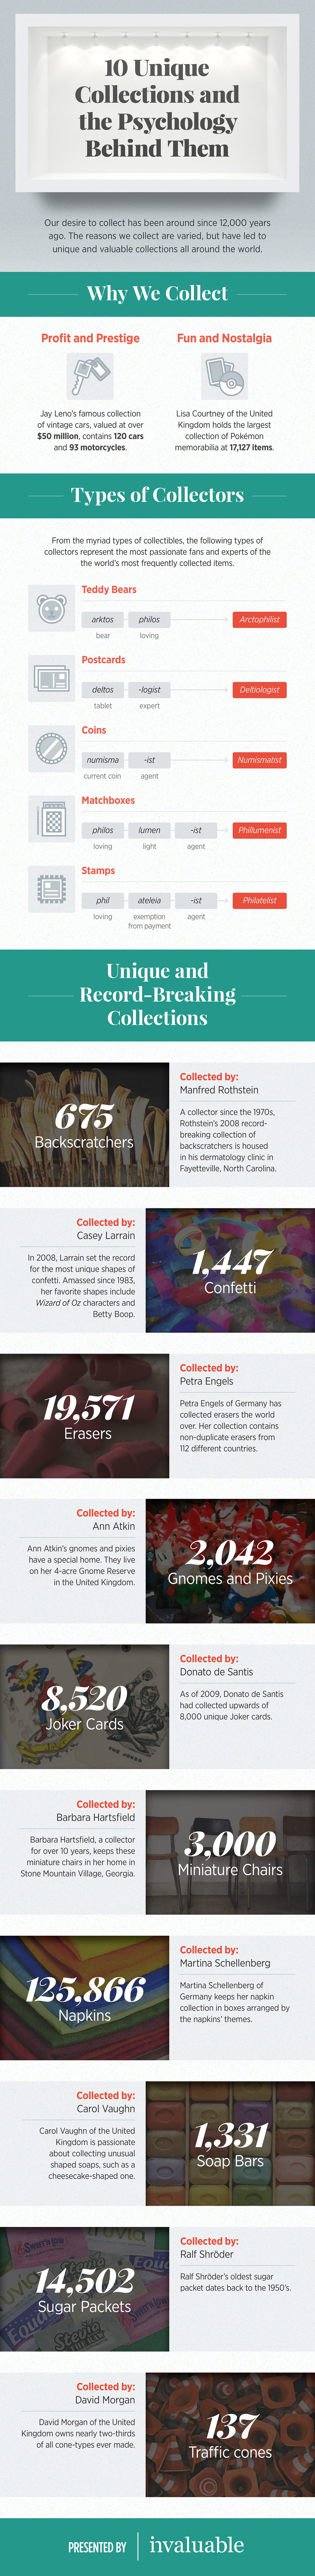 Collector's Fantasies: Psychology of Collectors and 10 Unique Collections - Infographic